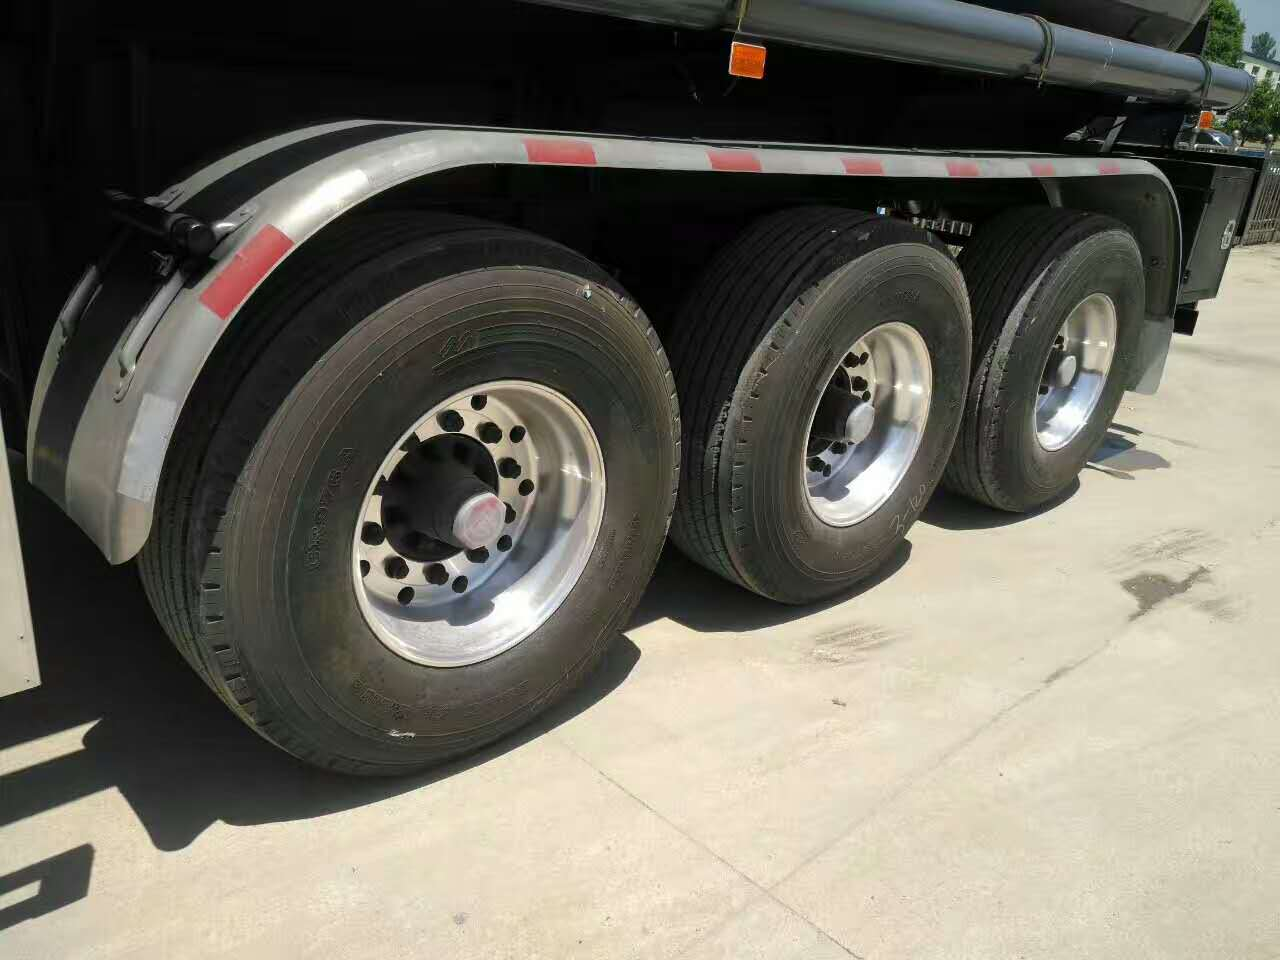 off-road tire for HCL tanker trailer